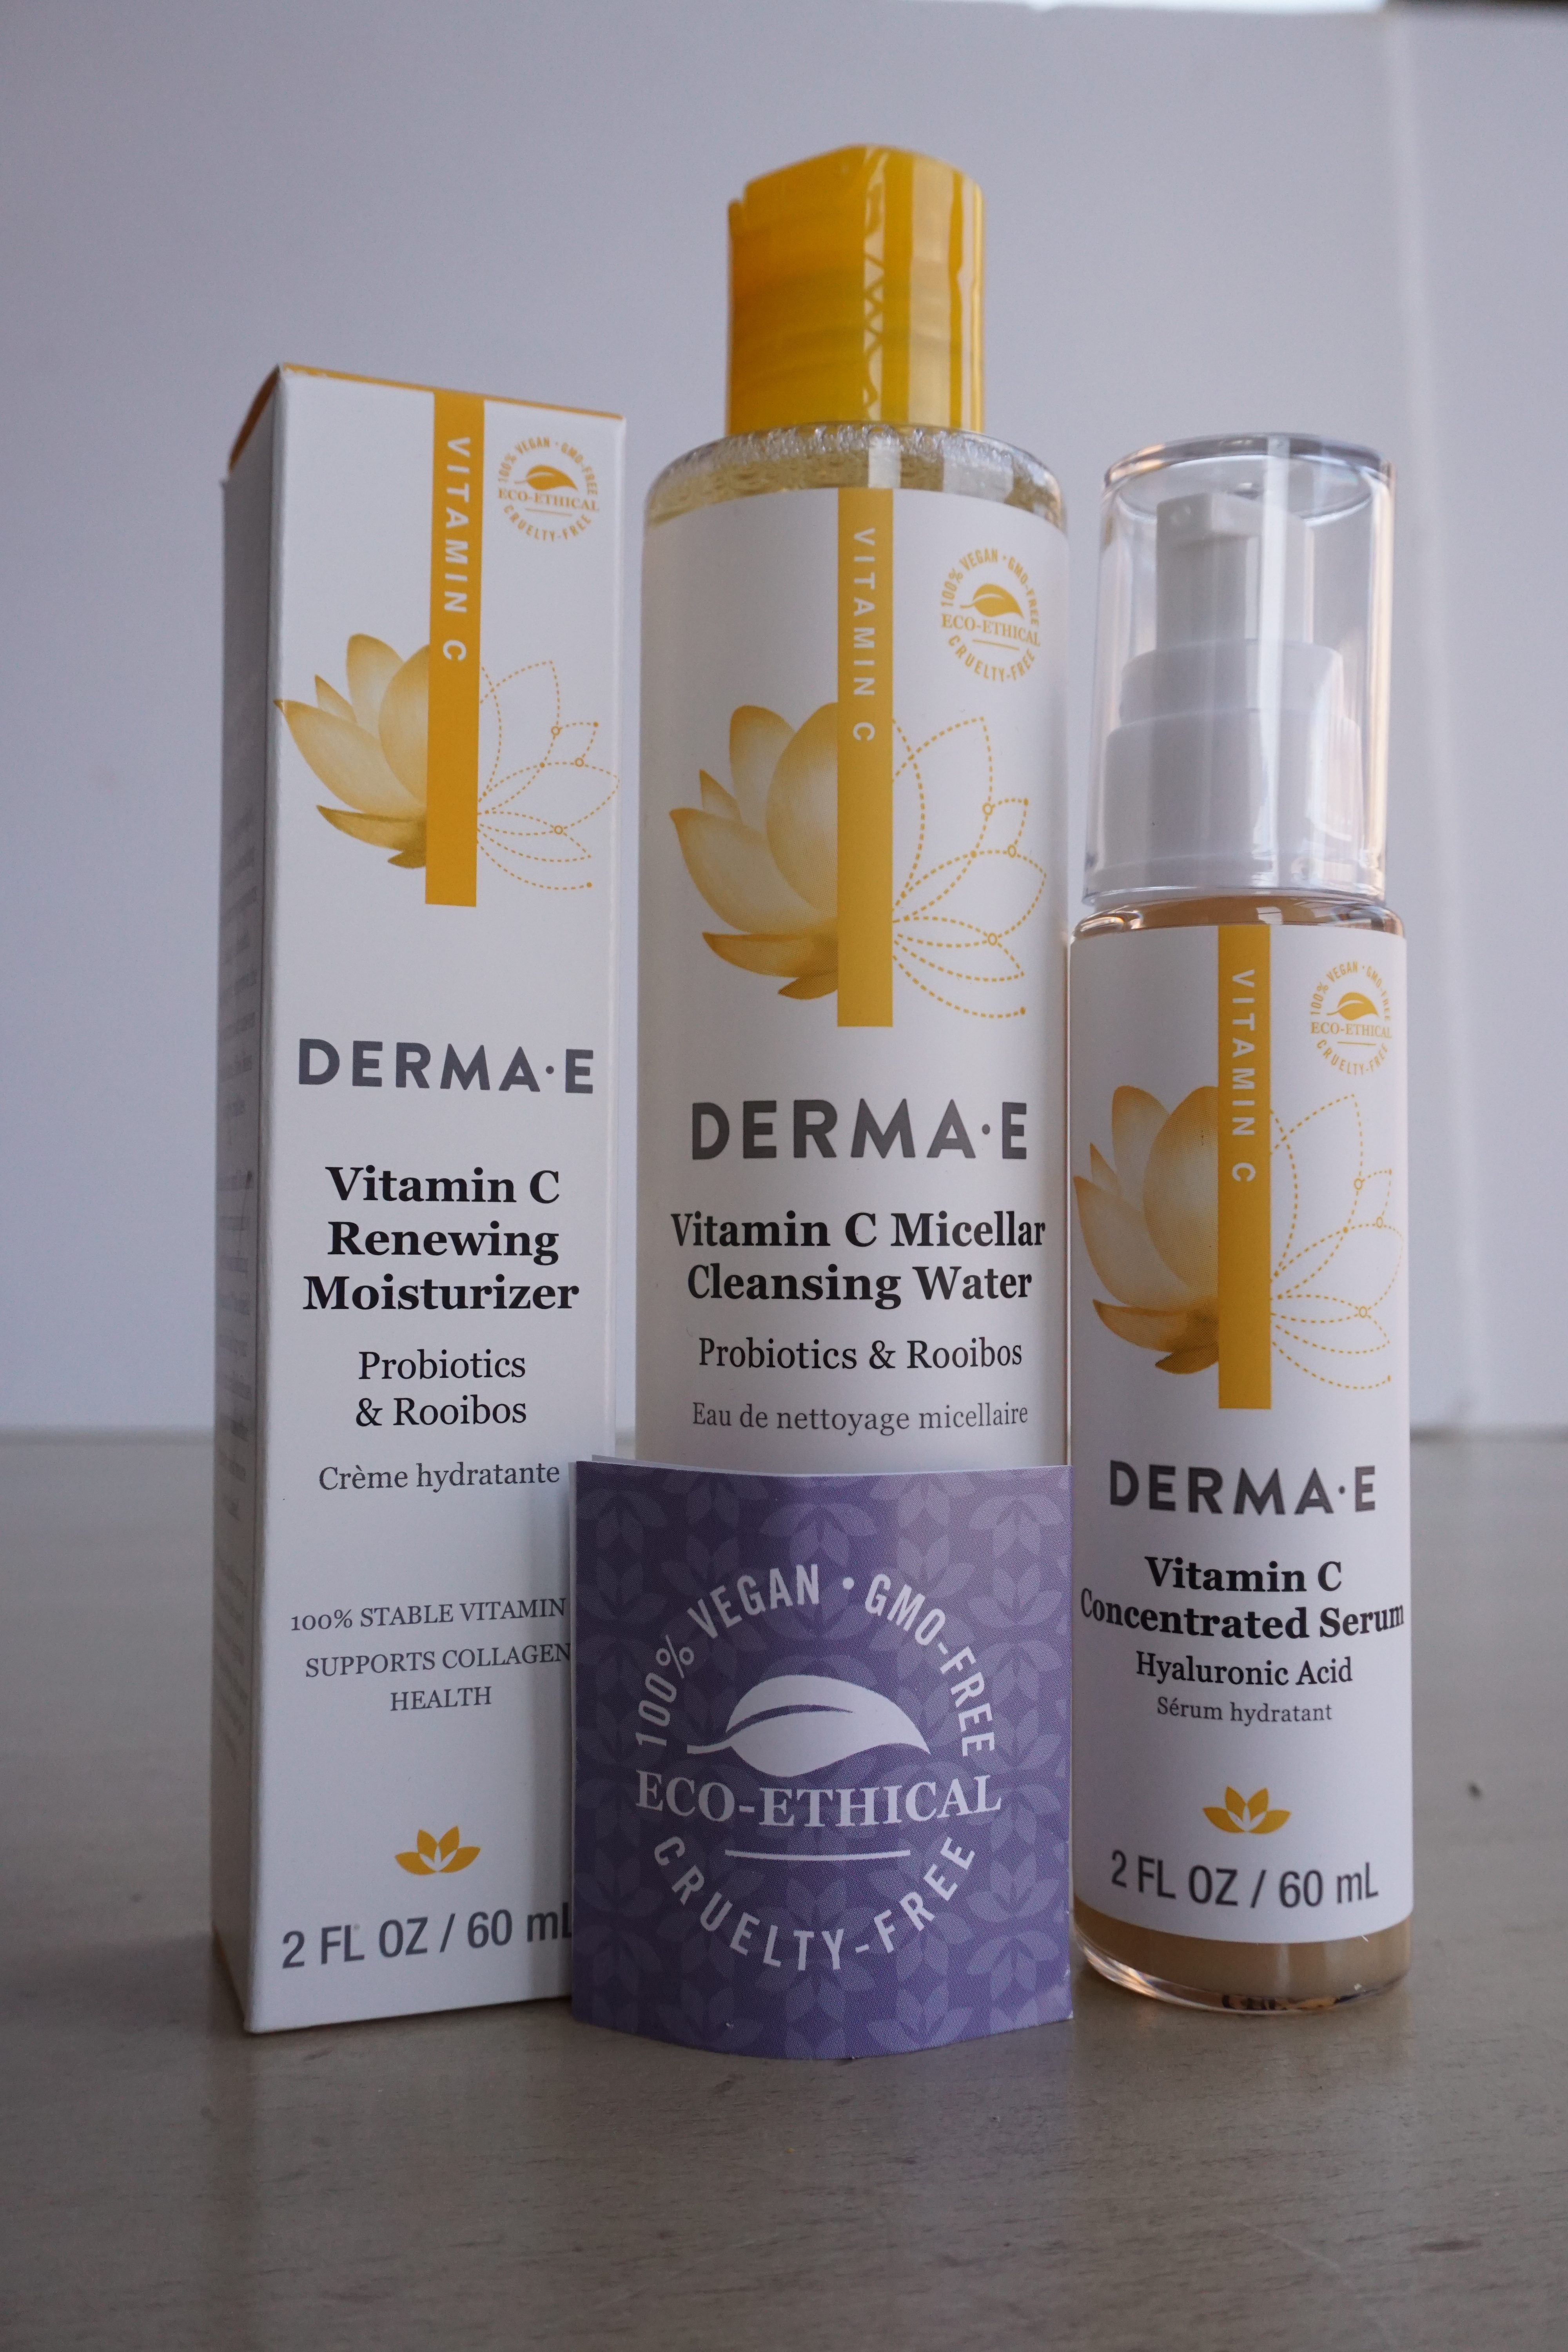 Image Skincare Review: Vitamin C Products For a Healthy Summer Glow recommend